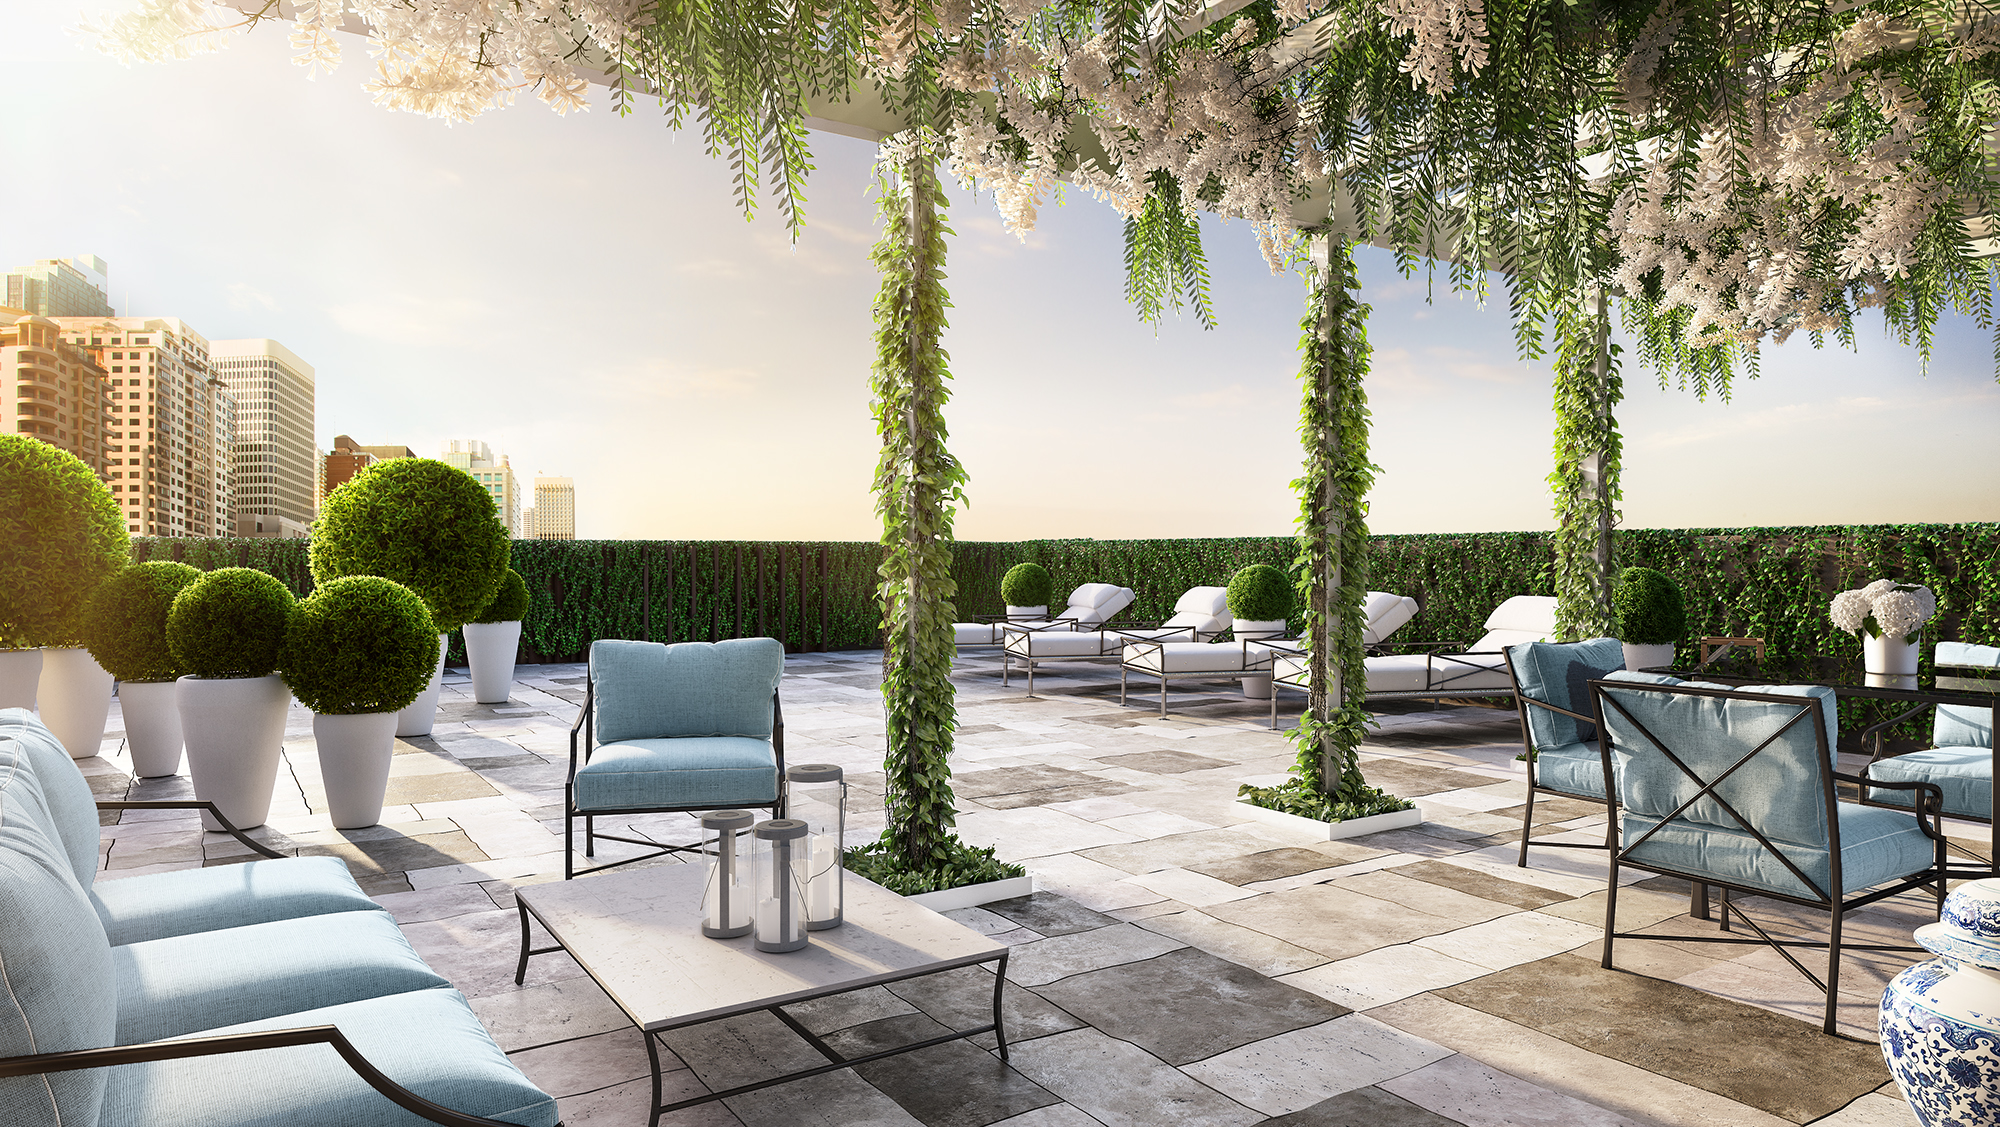 The outdoor terrace at Golf House Residences, Surry Hills